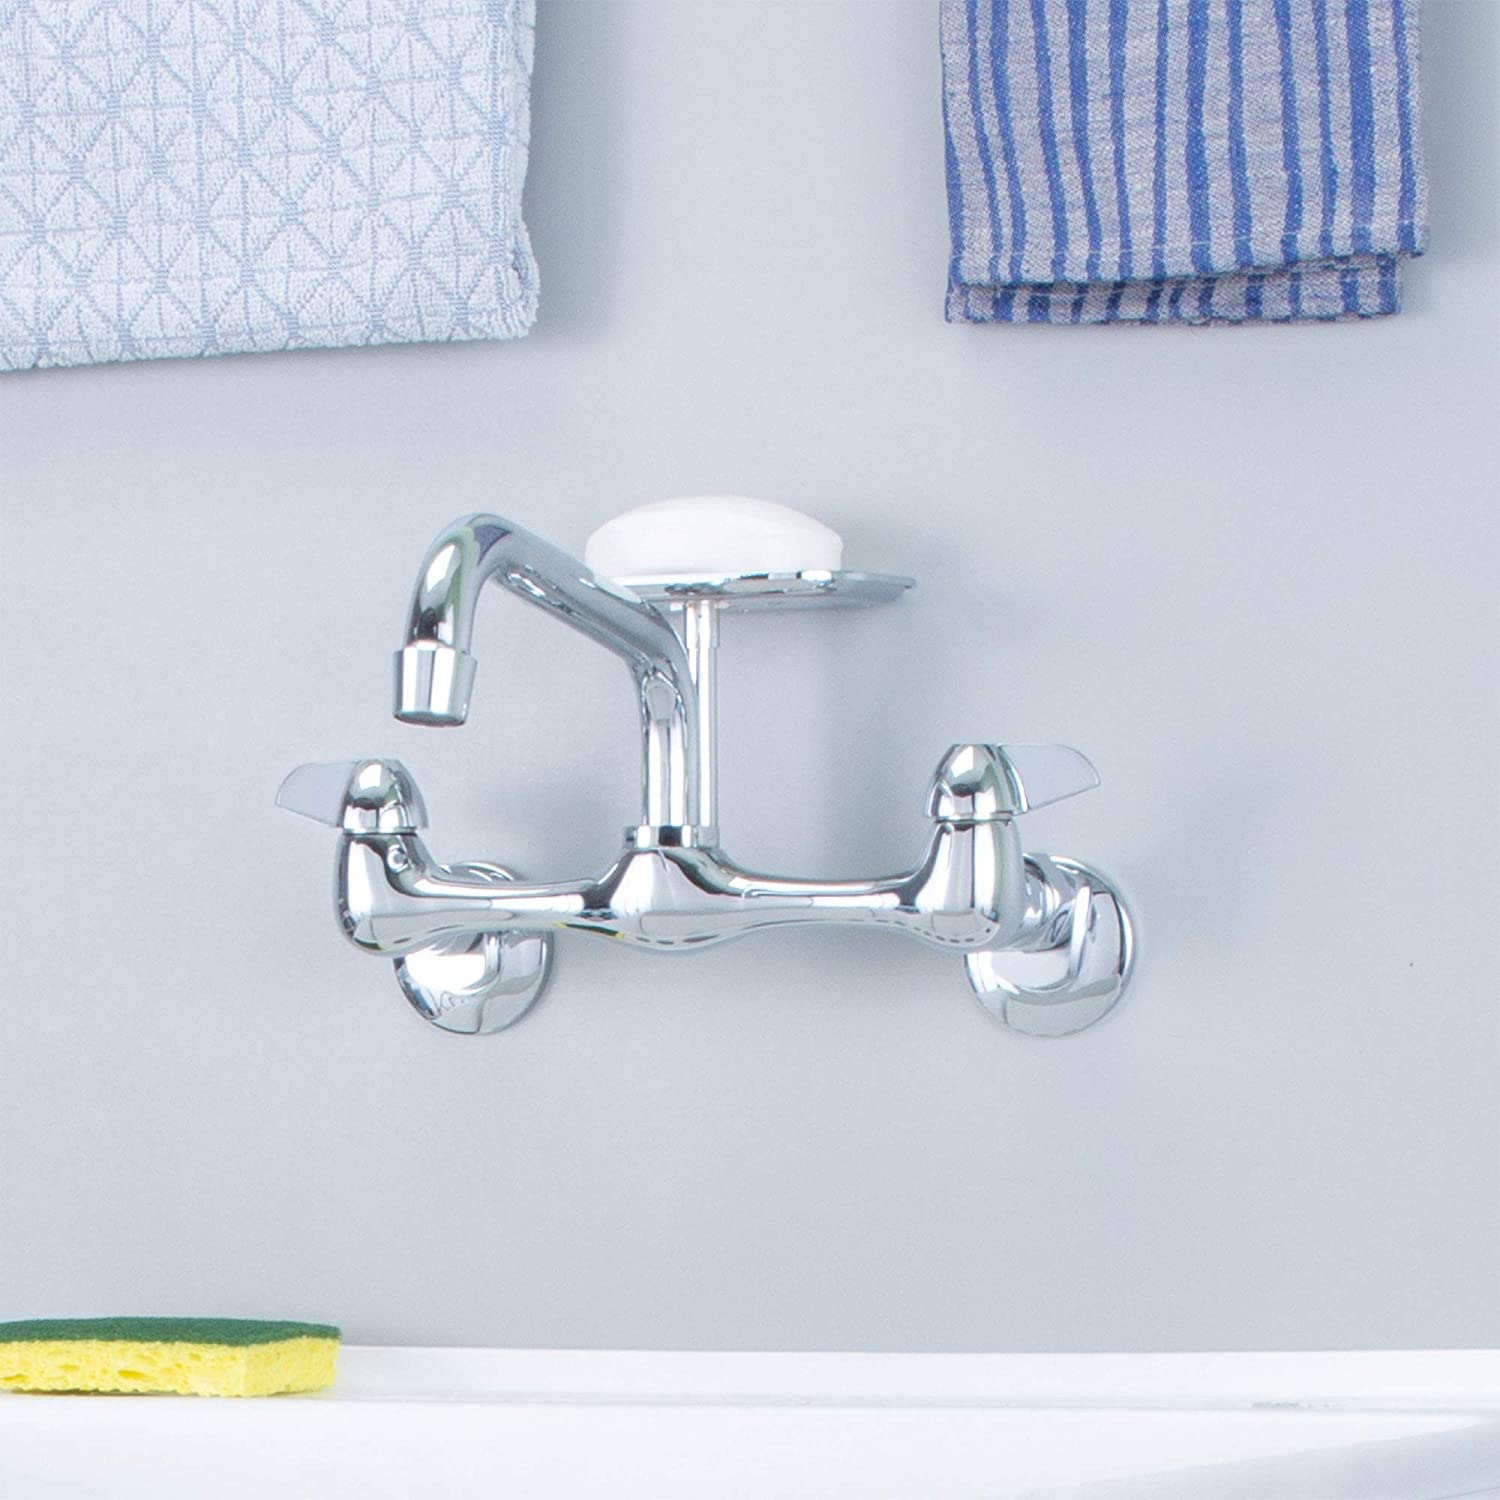 Heavy Duty Utility Sink Tap with Raised Soap Dish Double Handles Chrome Finish Wall Mounted Laundry Tub Faucet by JS Jackson Supplies